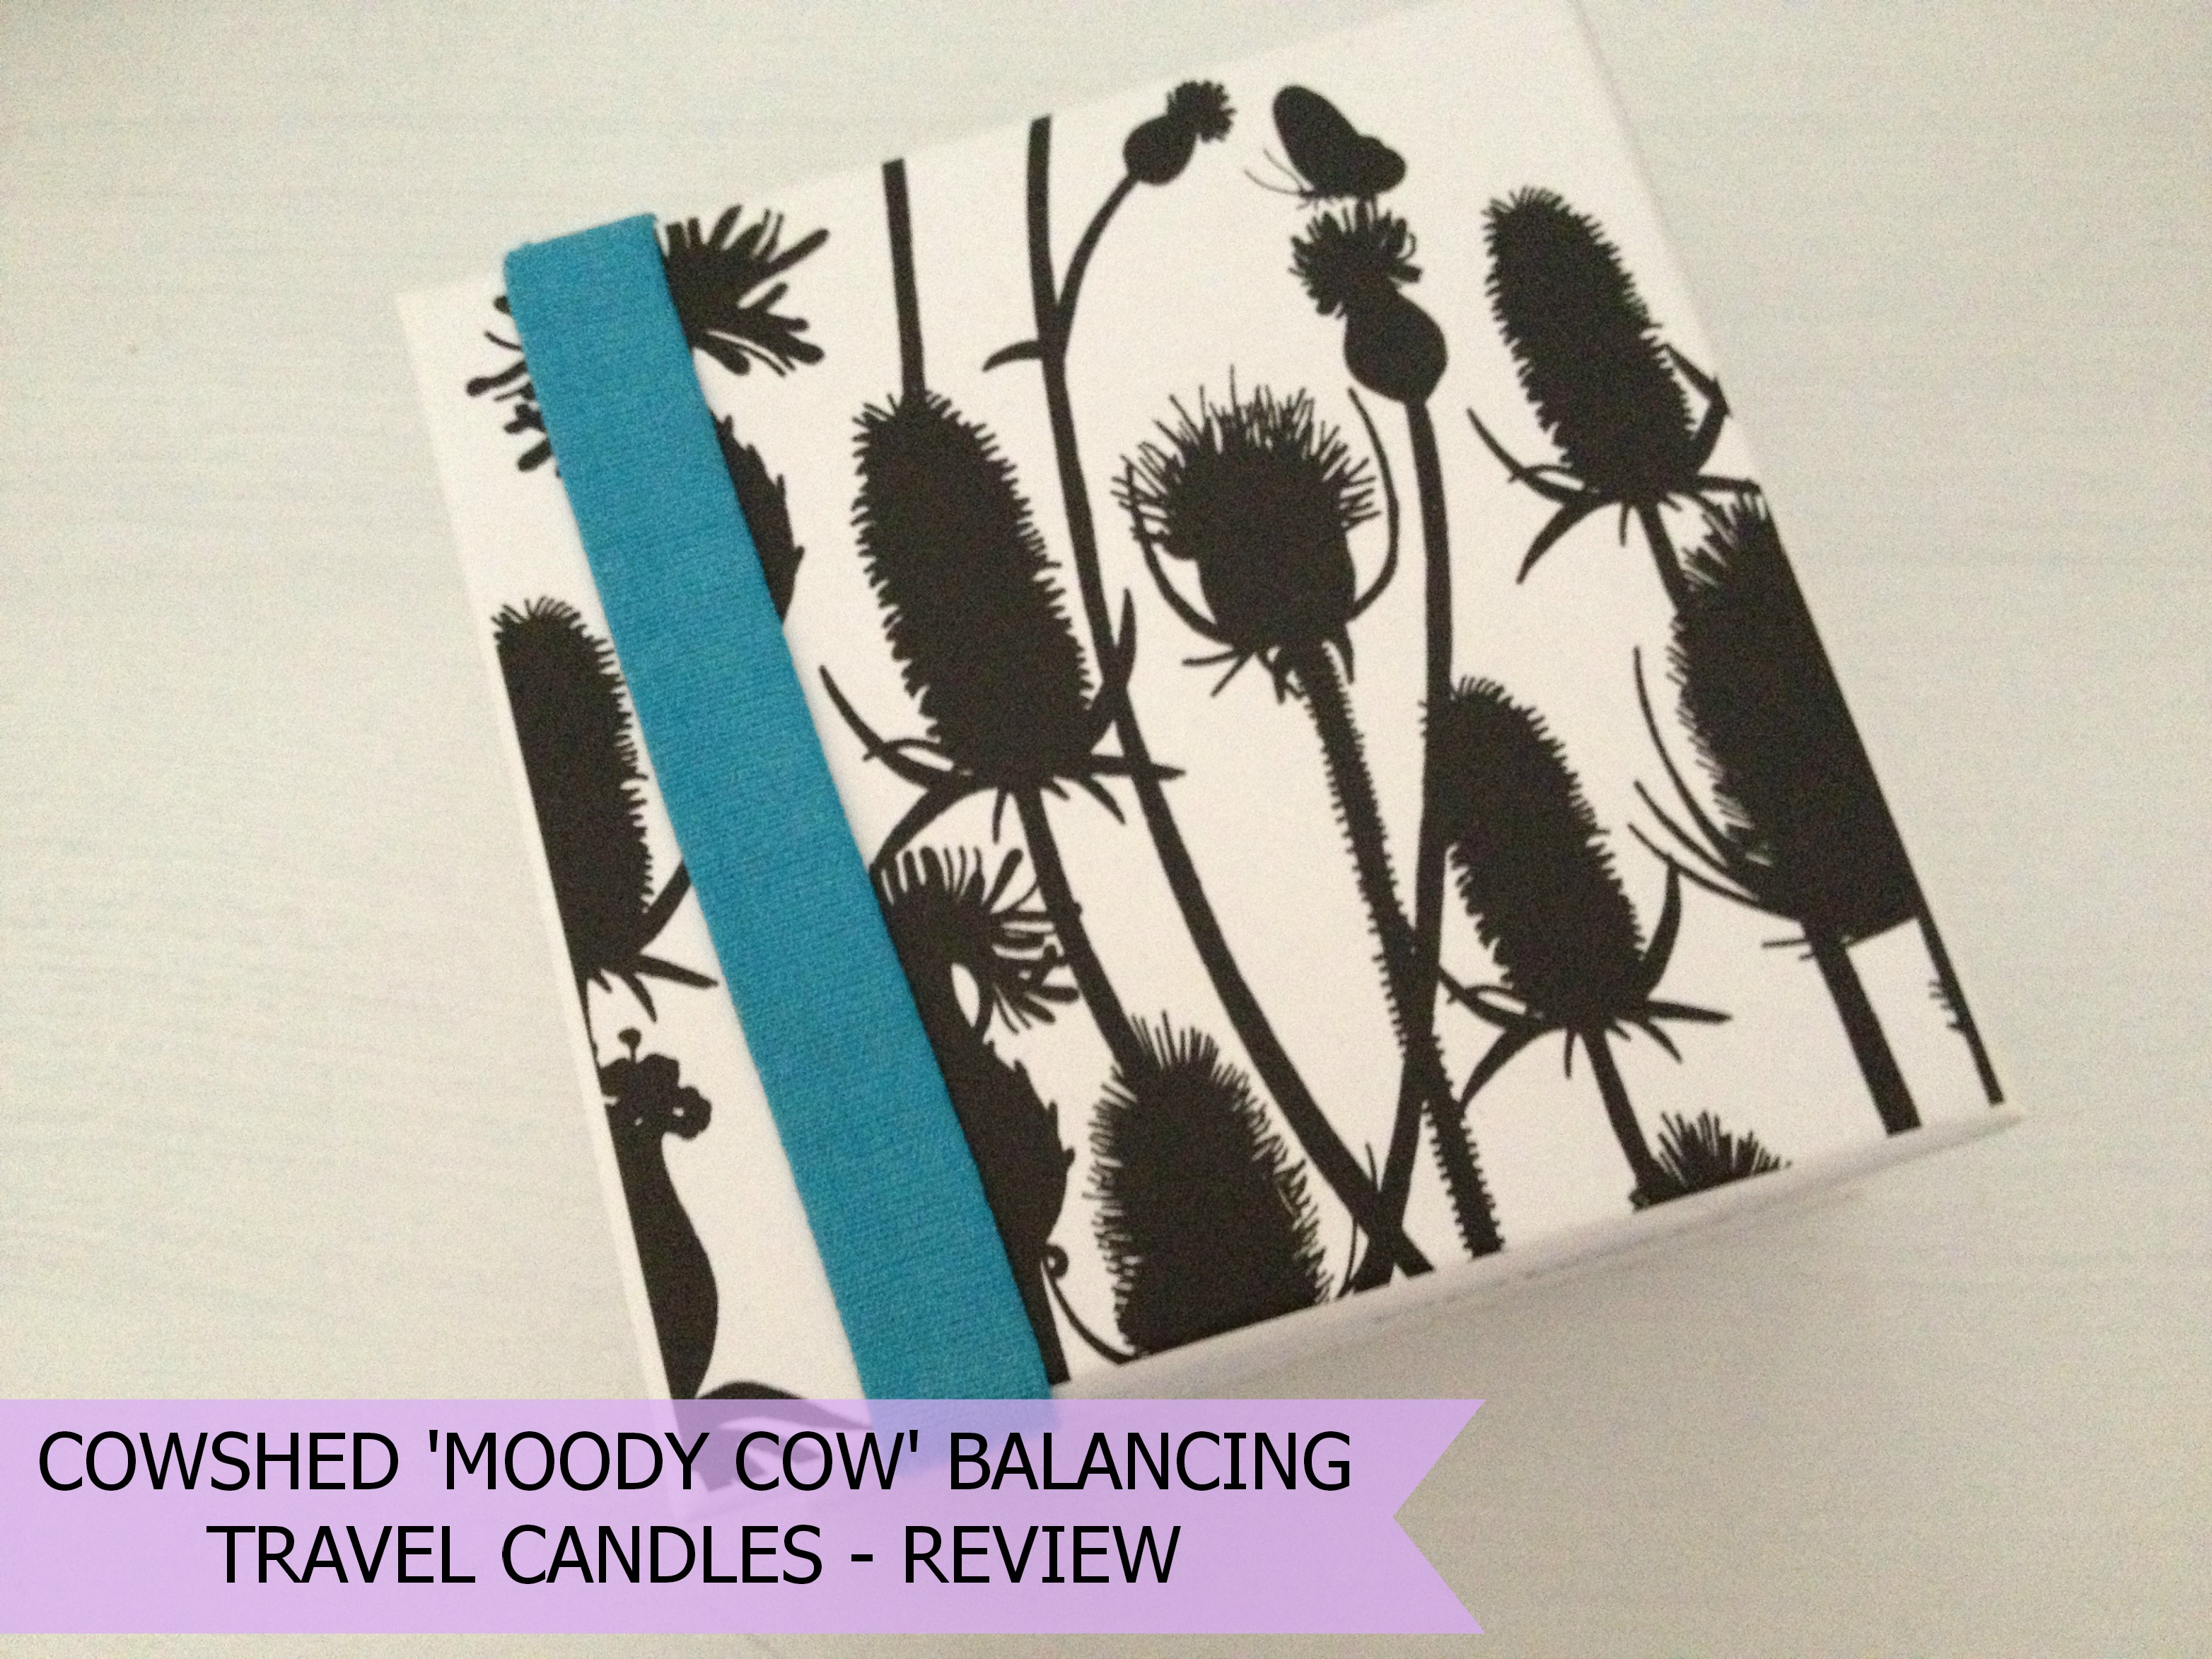 Cowshed_Moody_Cow_Balancing_Travel_Candles_1